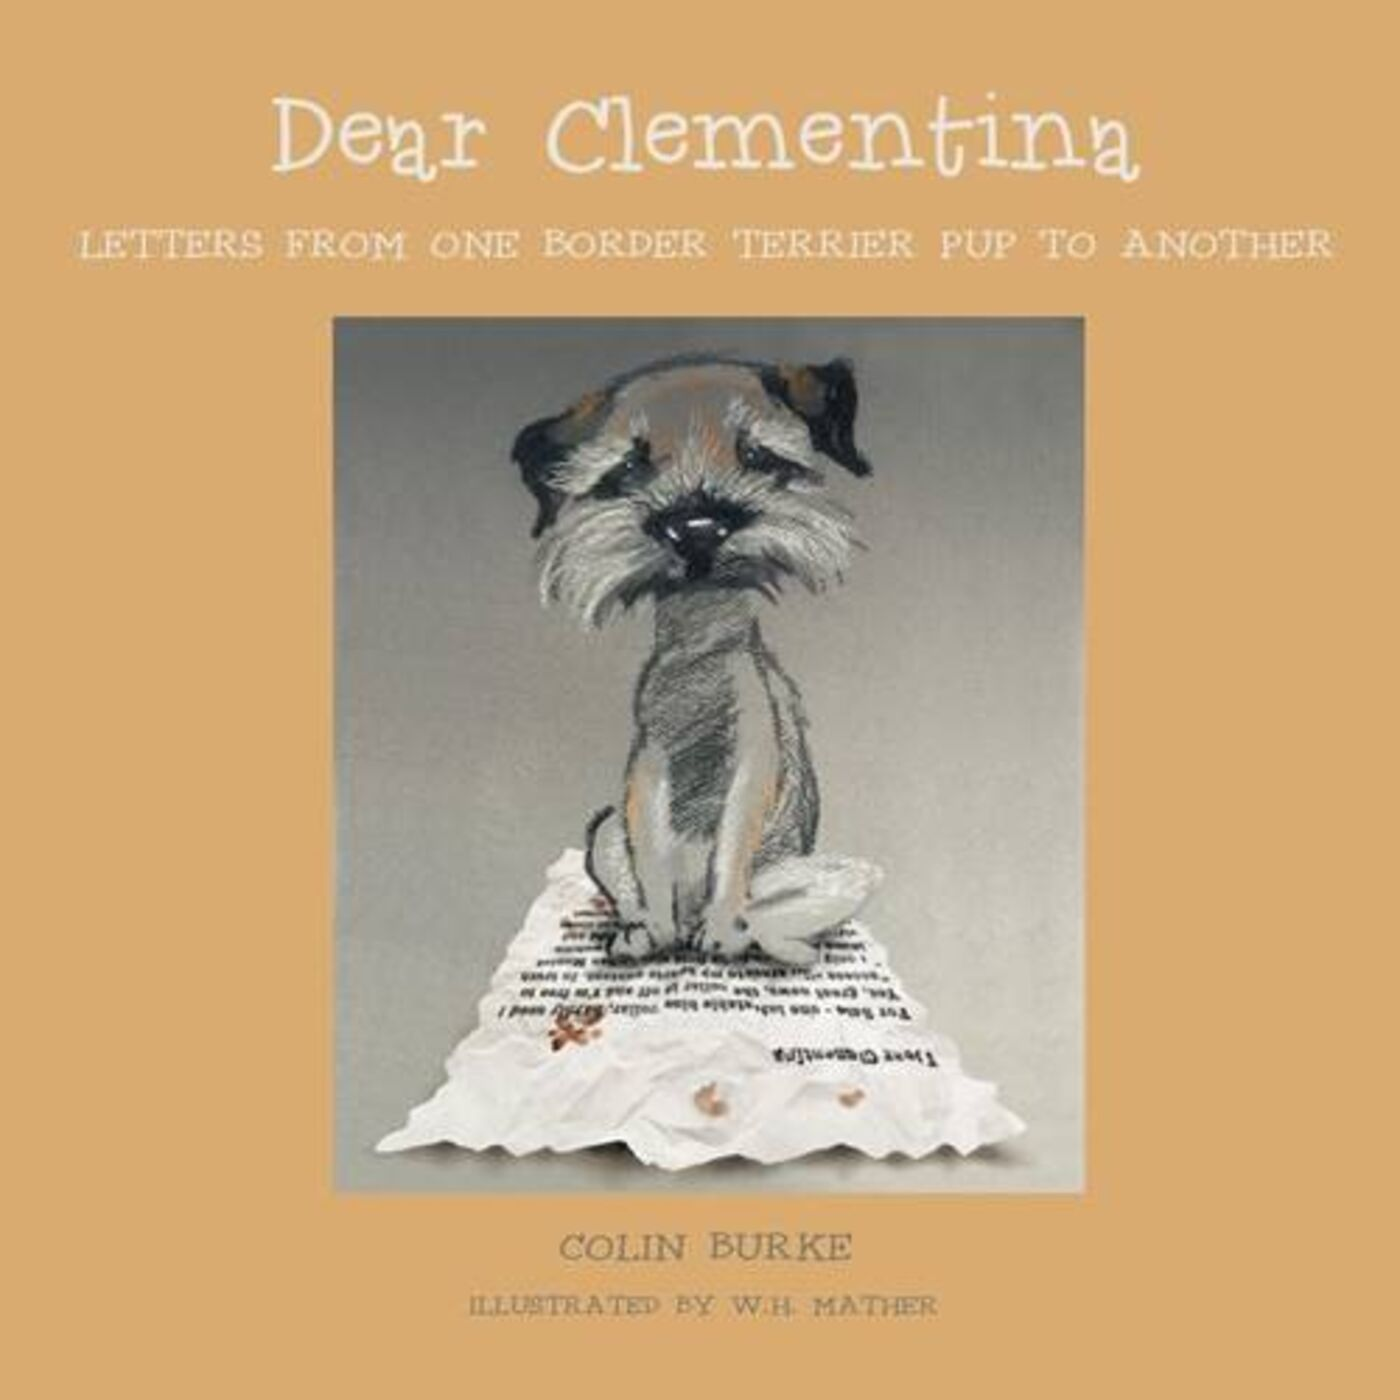 Dear Clementina  Chapter 22 - Kids What Are They For